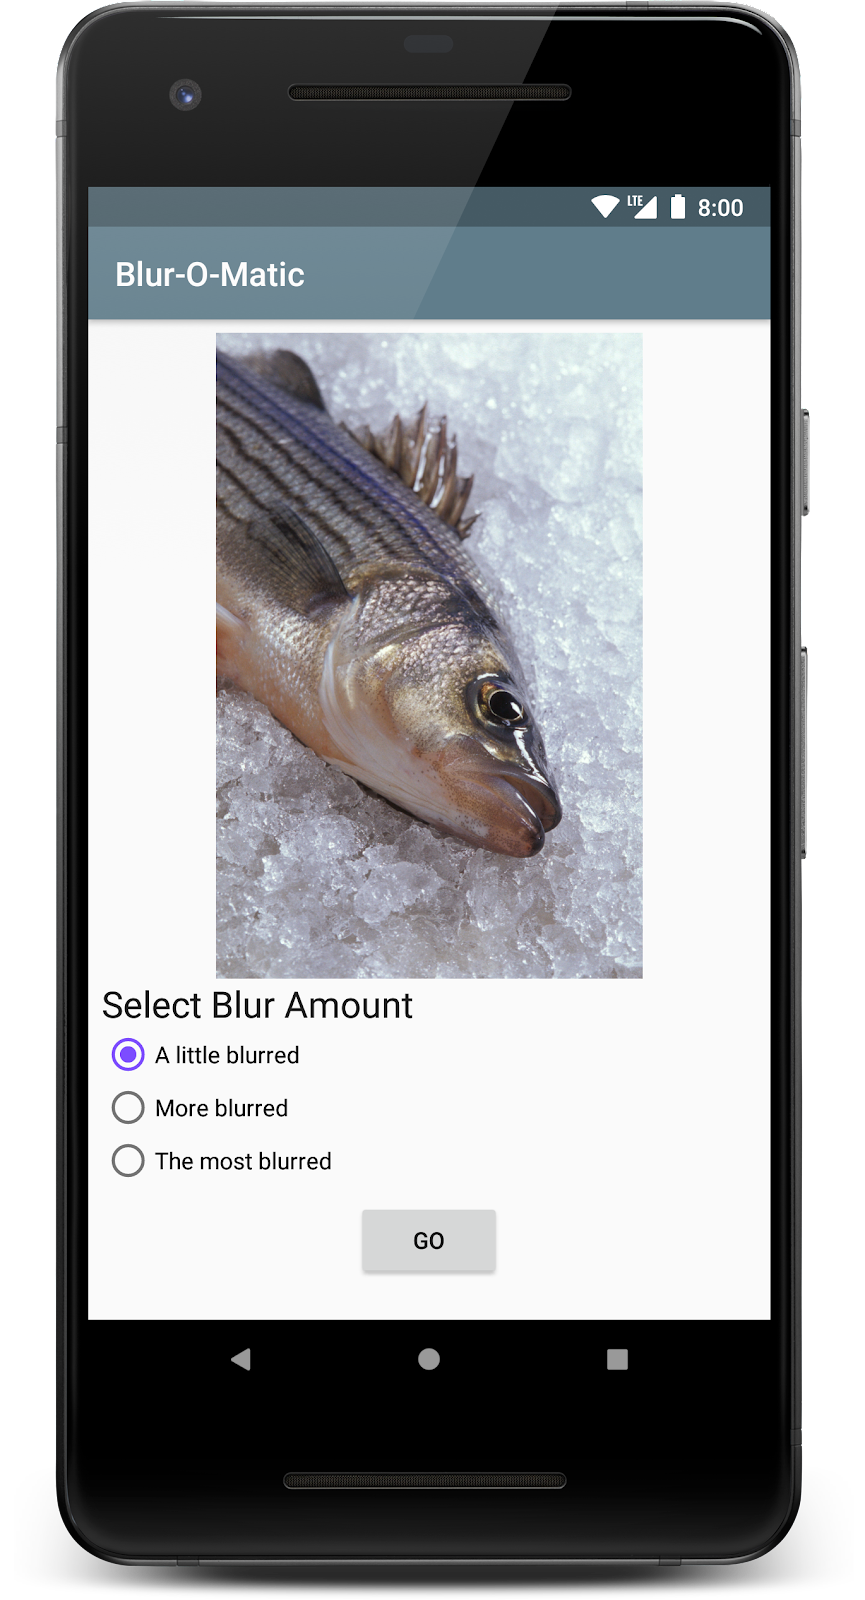 Screen in app that shows after image has been selected. Screen shows selected image, 3 radio buttons on blur amount, and button to start blurring image.